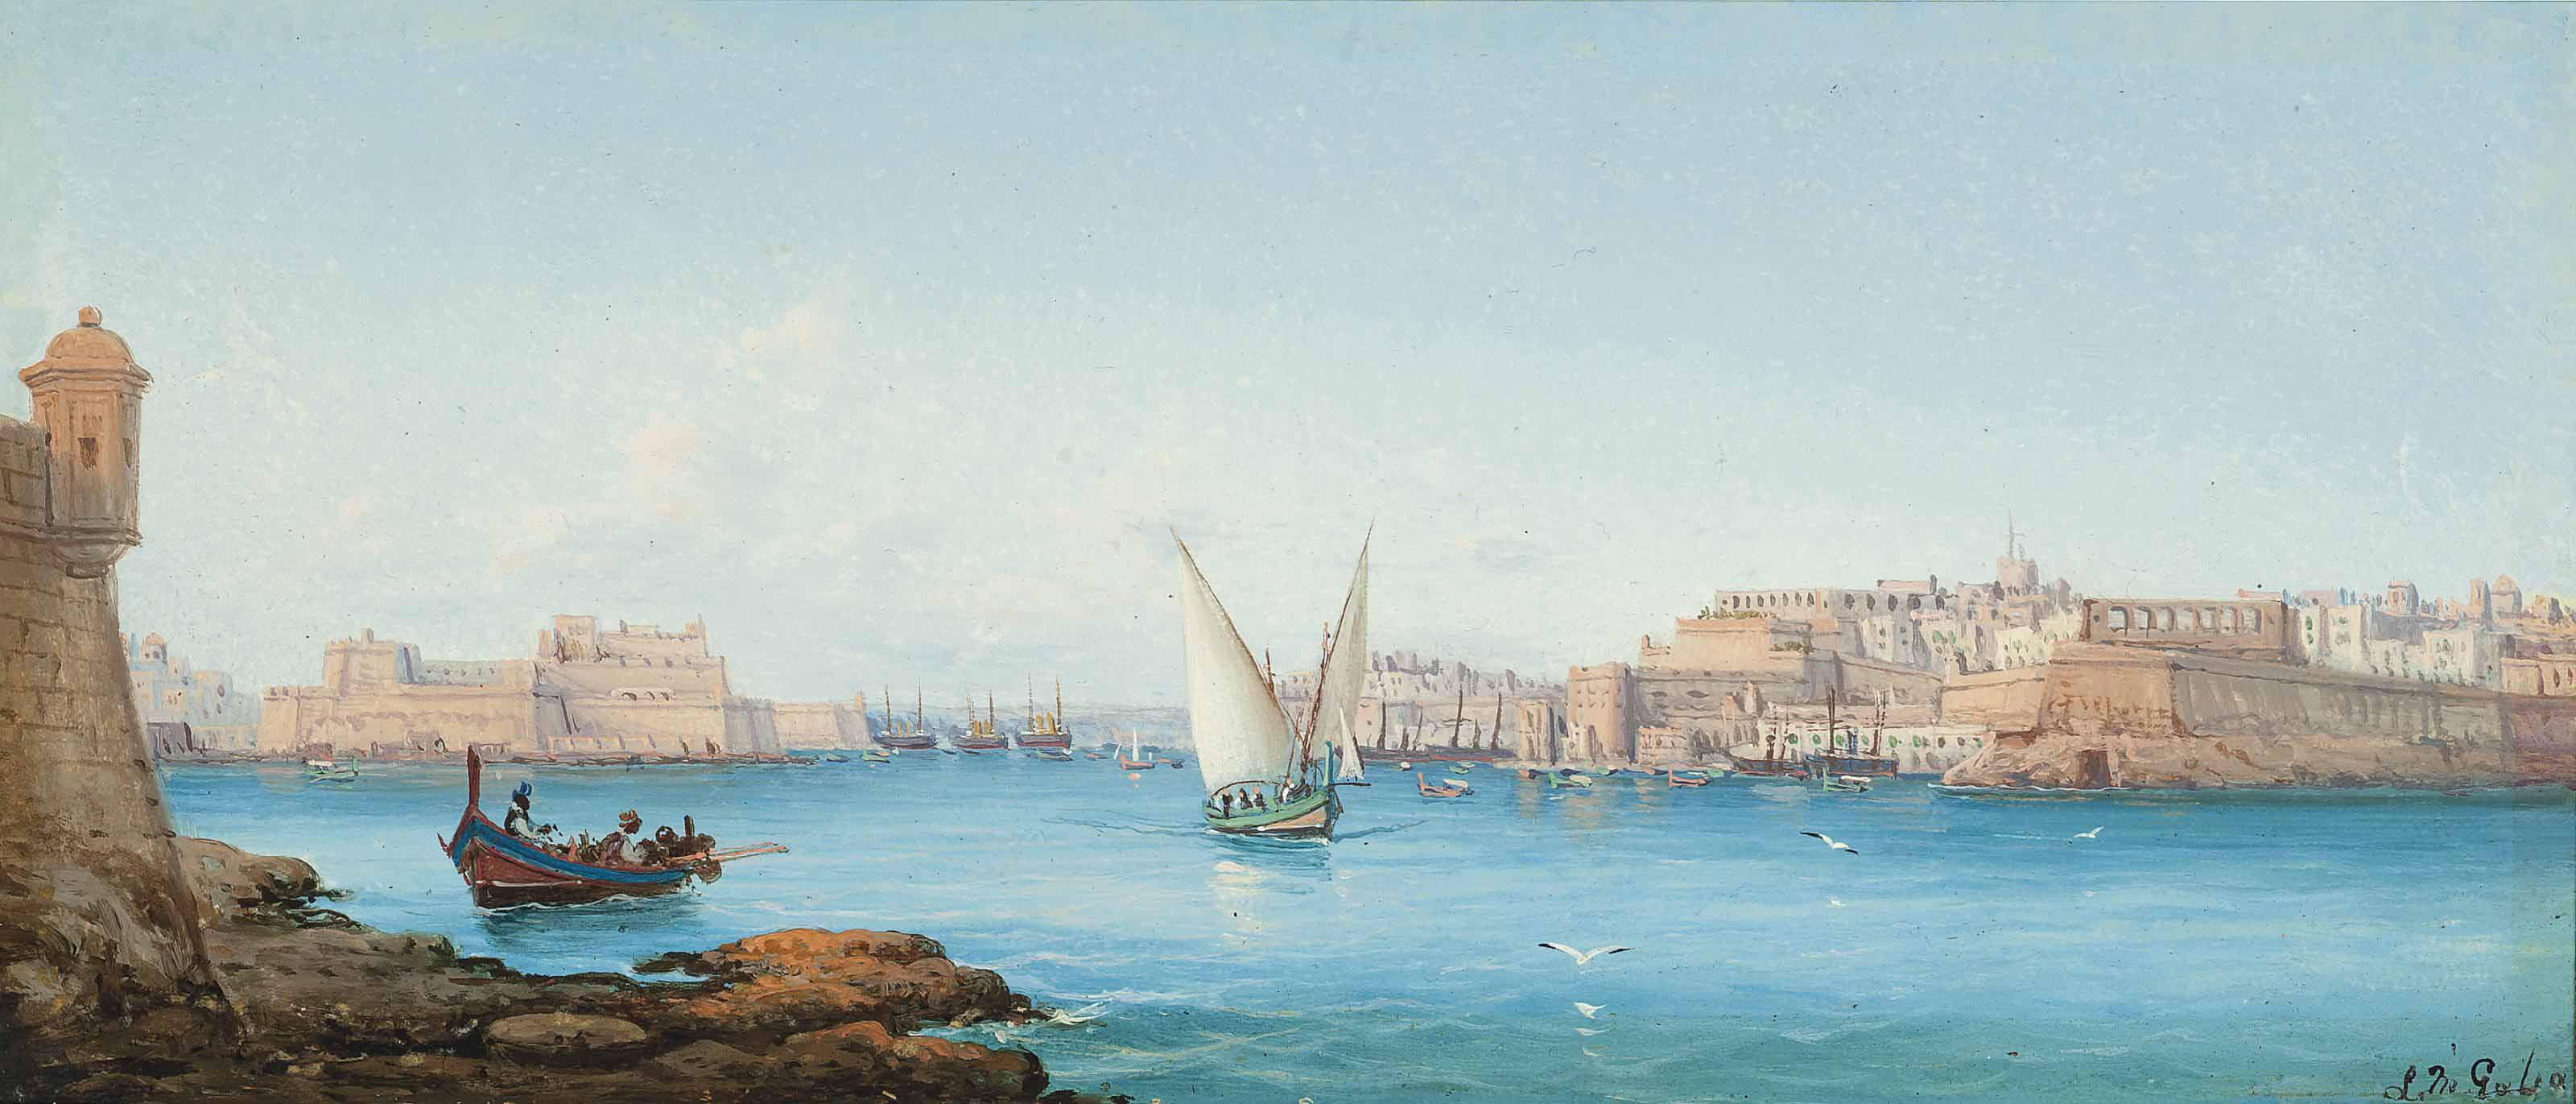 The entrance to the Grand Harbour, Valetta